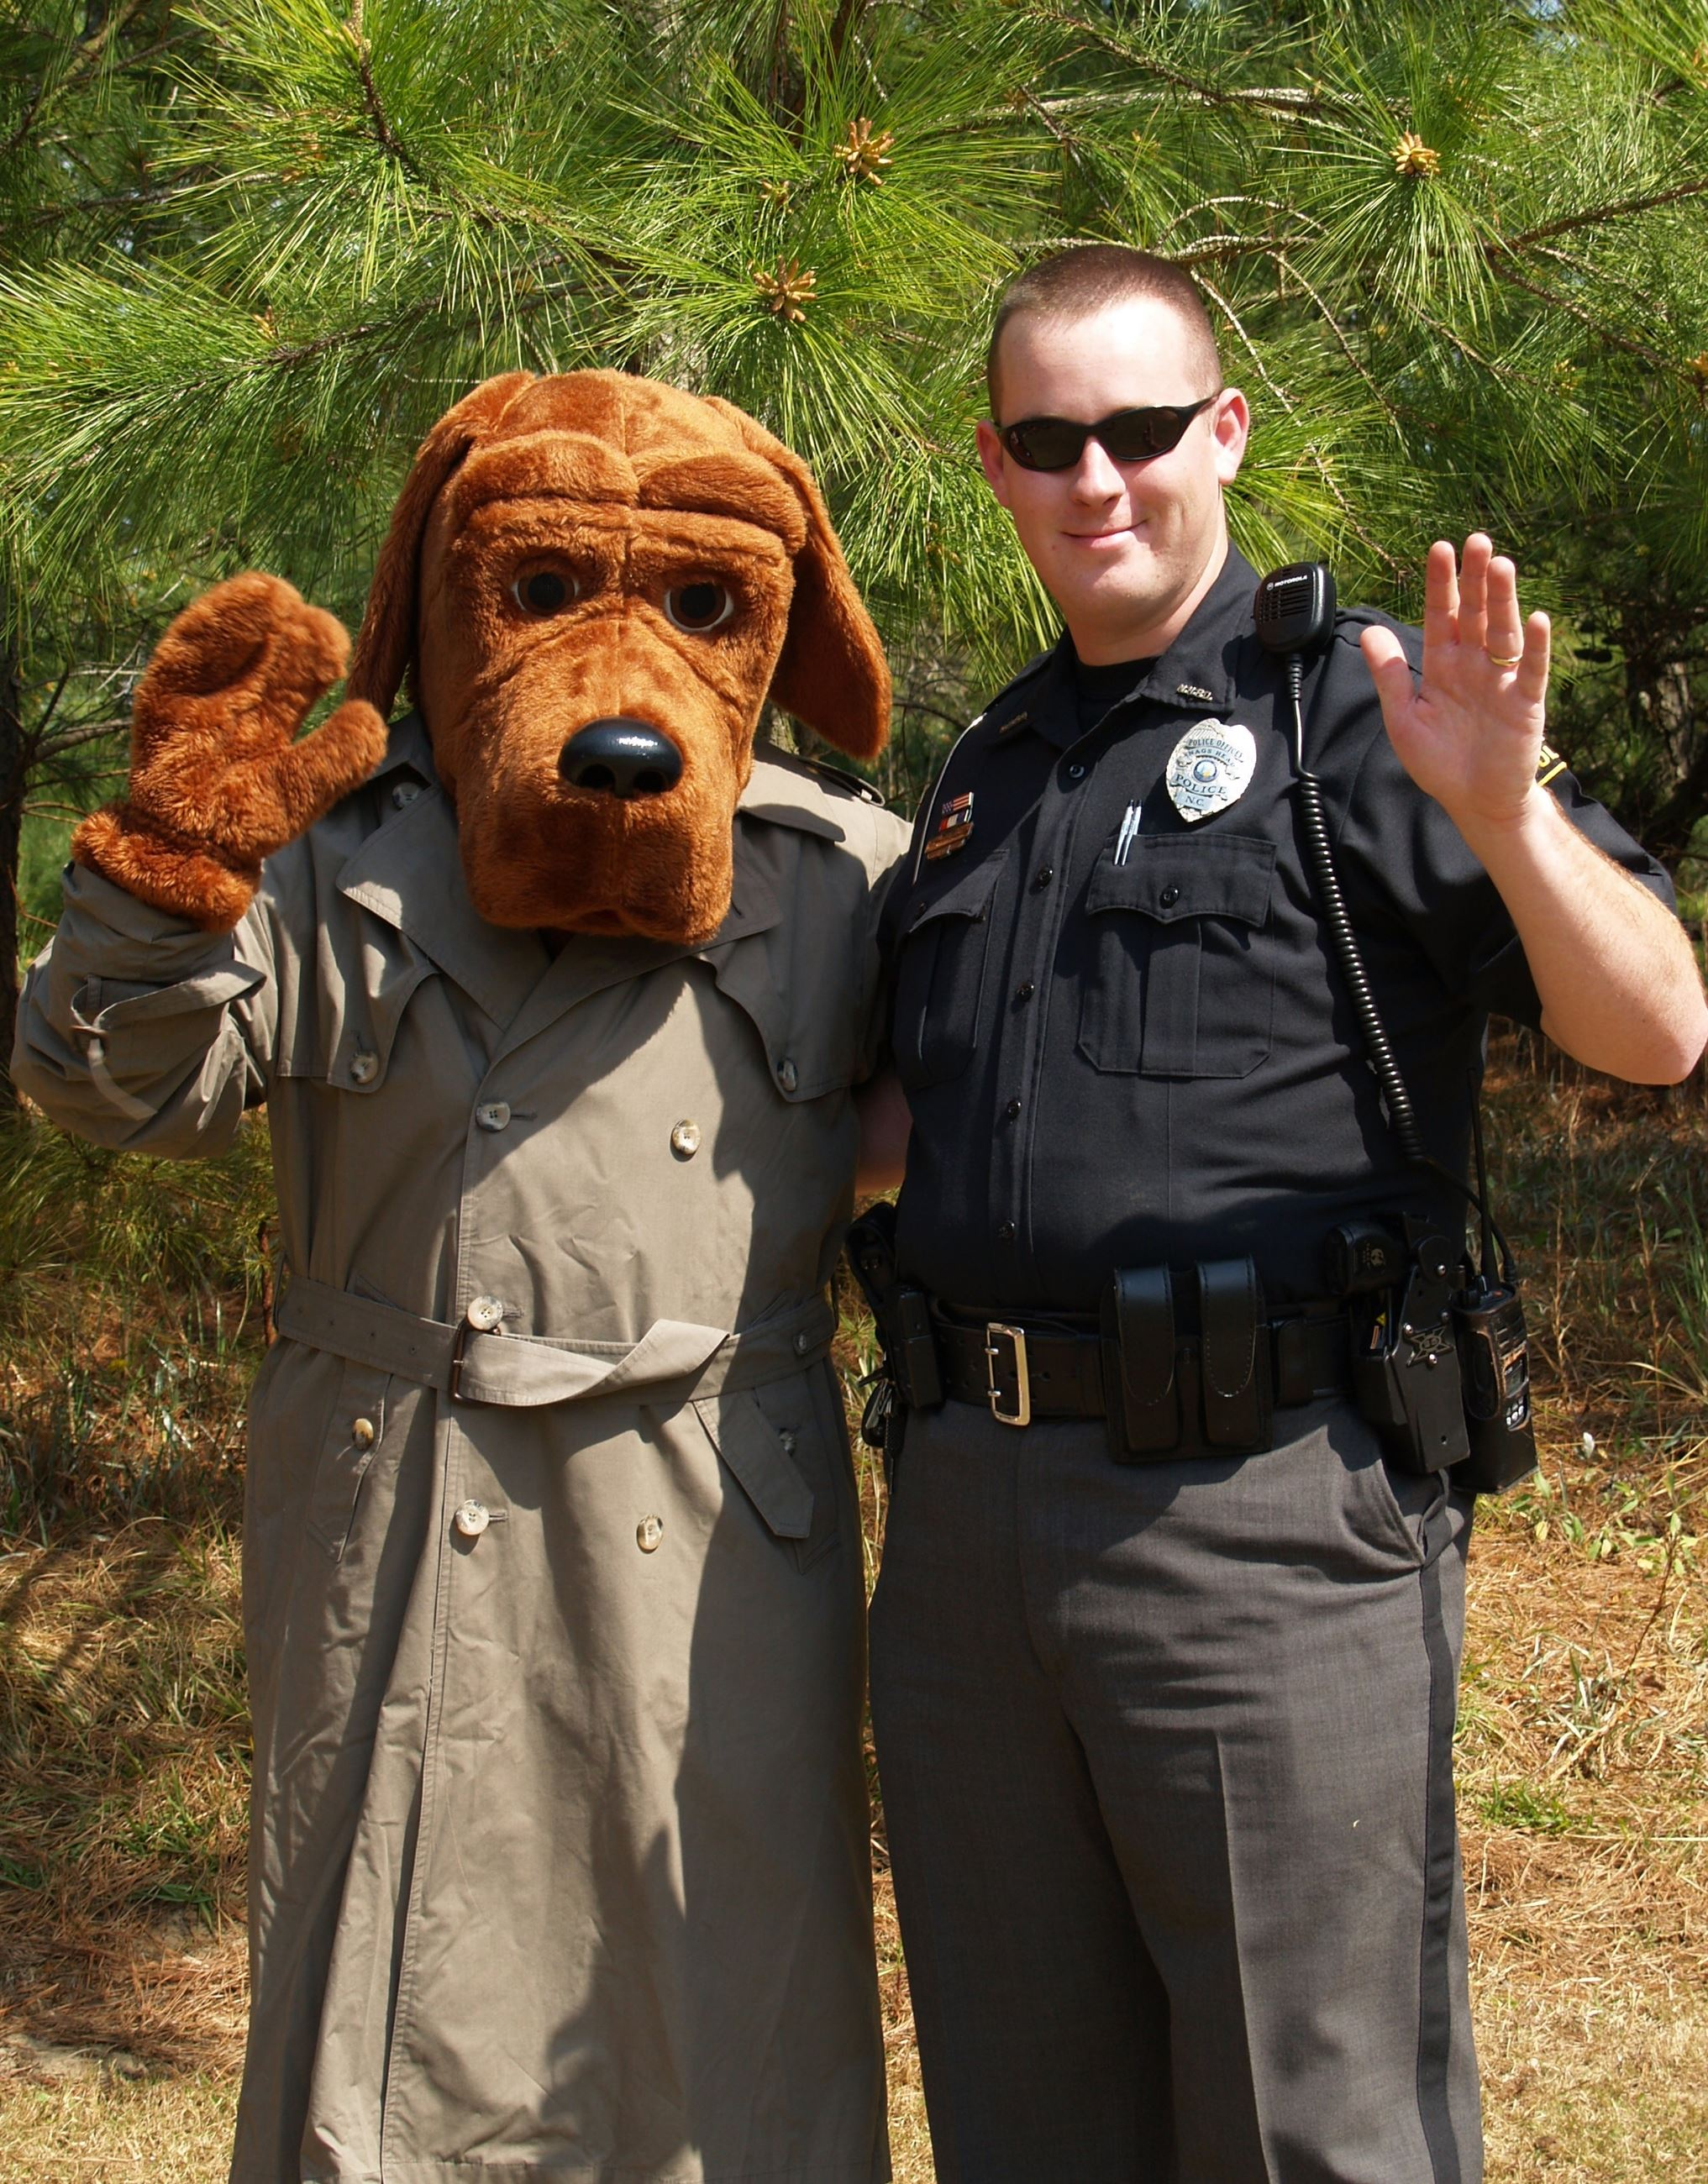 McGruff the Crime Dog and an officer